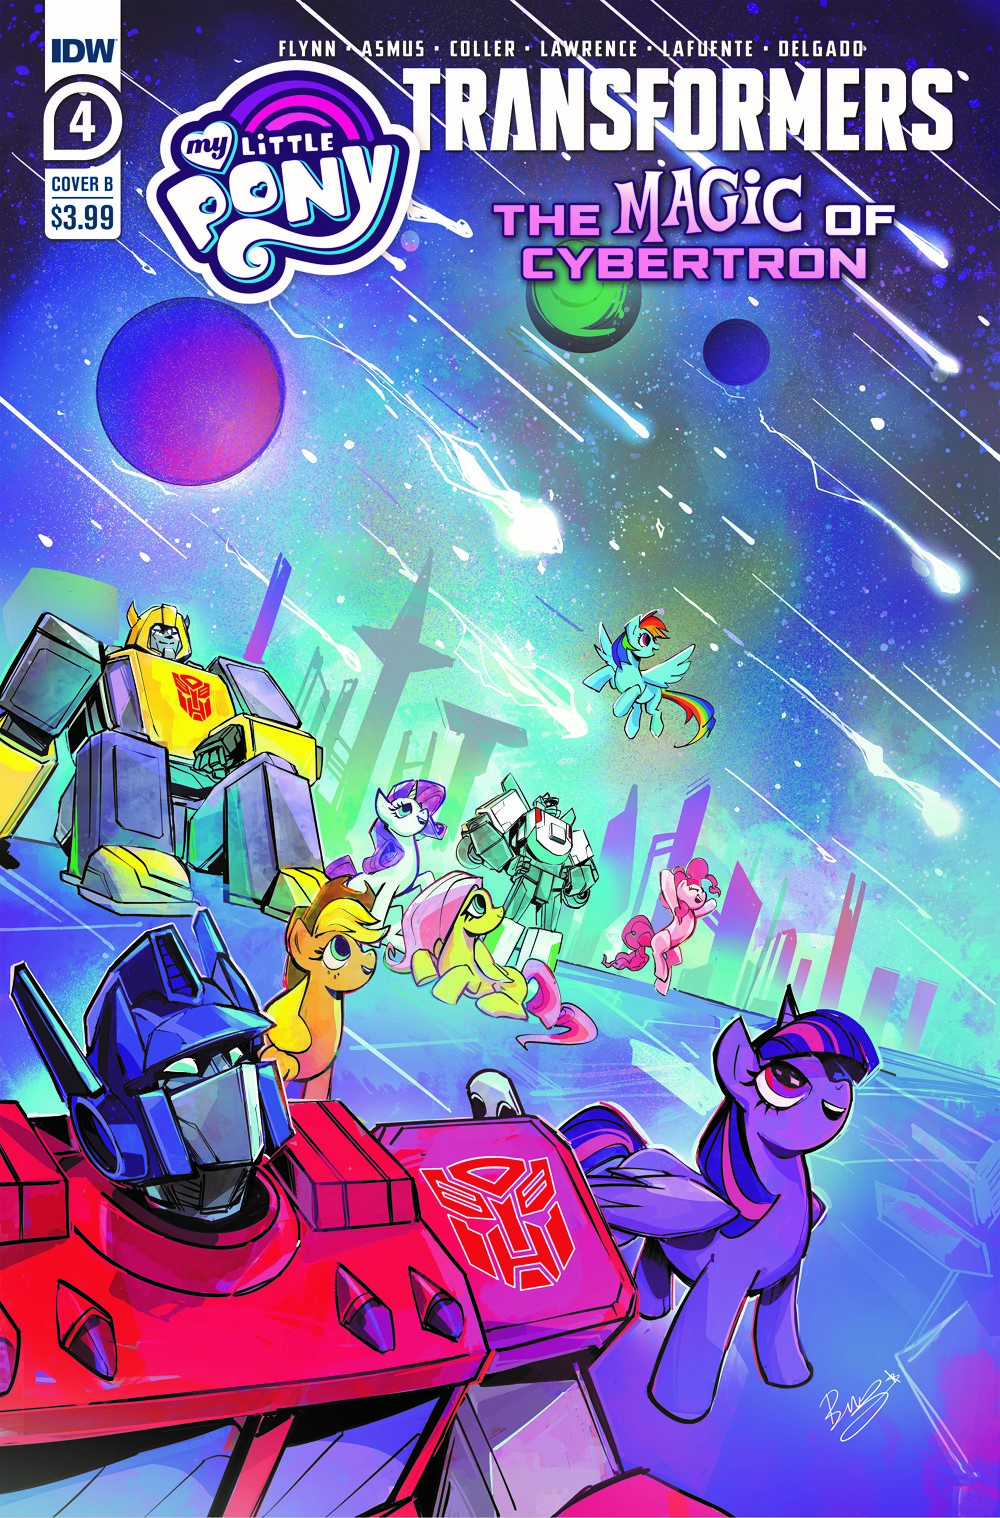 MLP_TF04-coverB ComicList: IDW Publishing New Releases for 07/21/2021